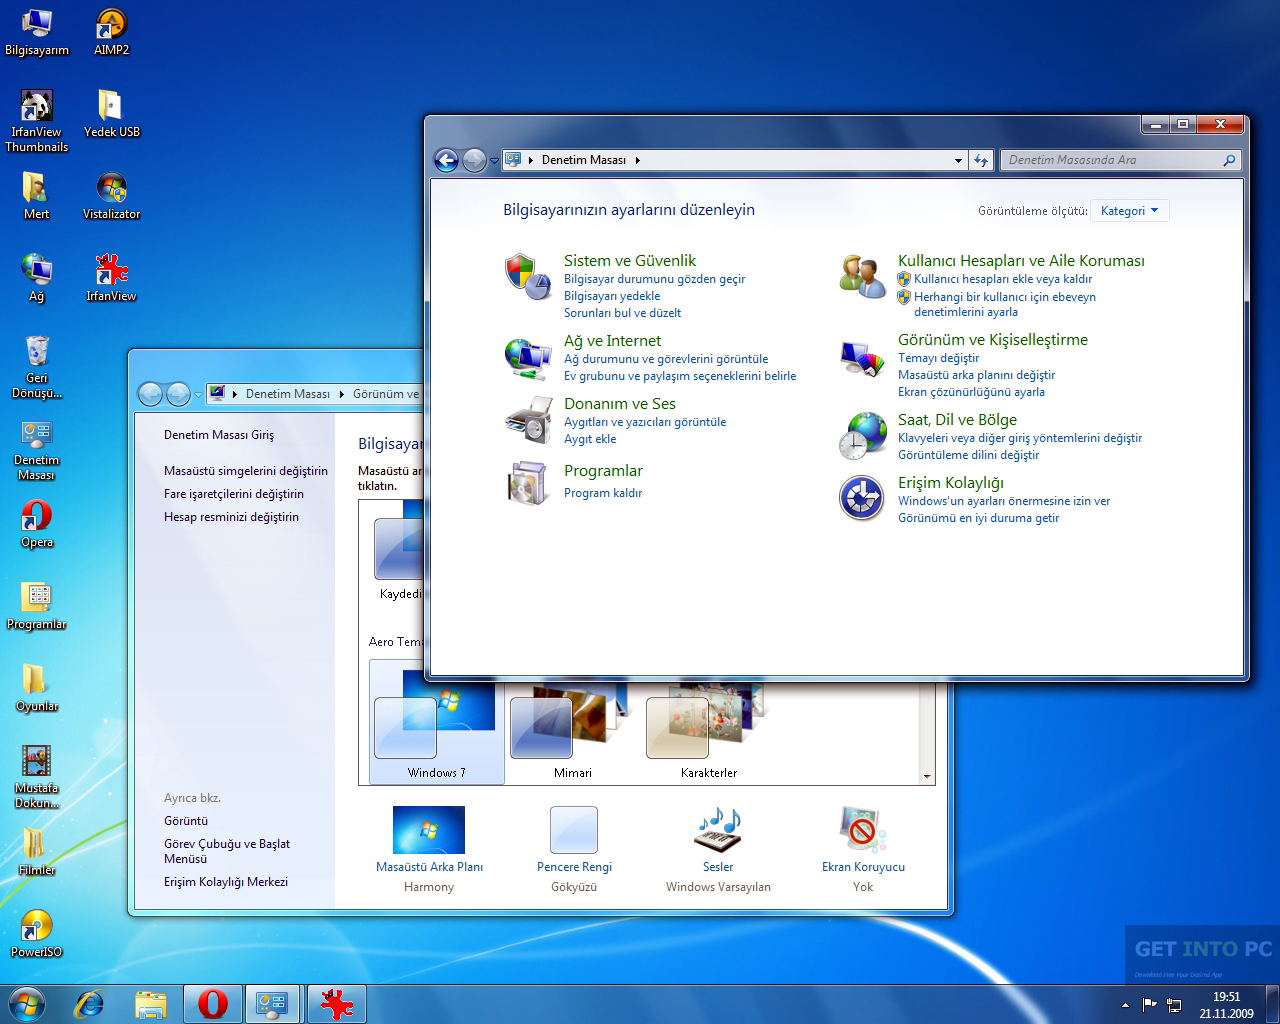 Dell windows 7 iso image download | Dell Windows 7 Ultimate (Genuine